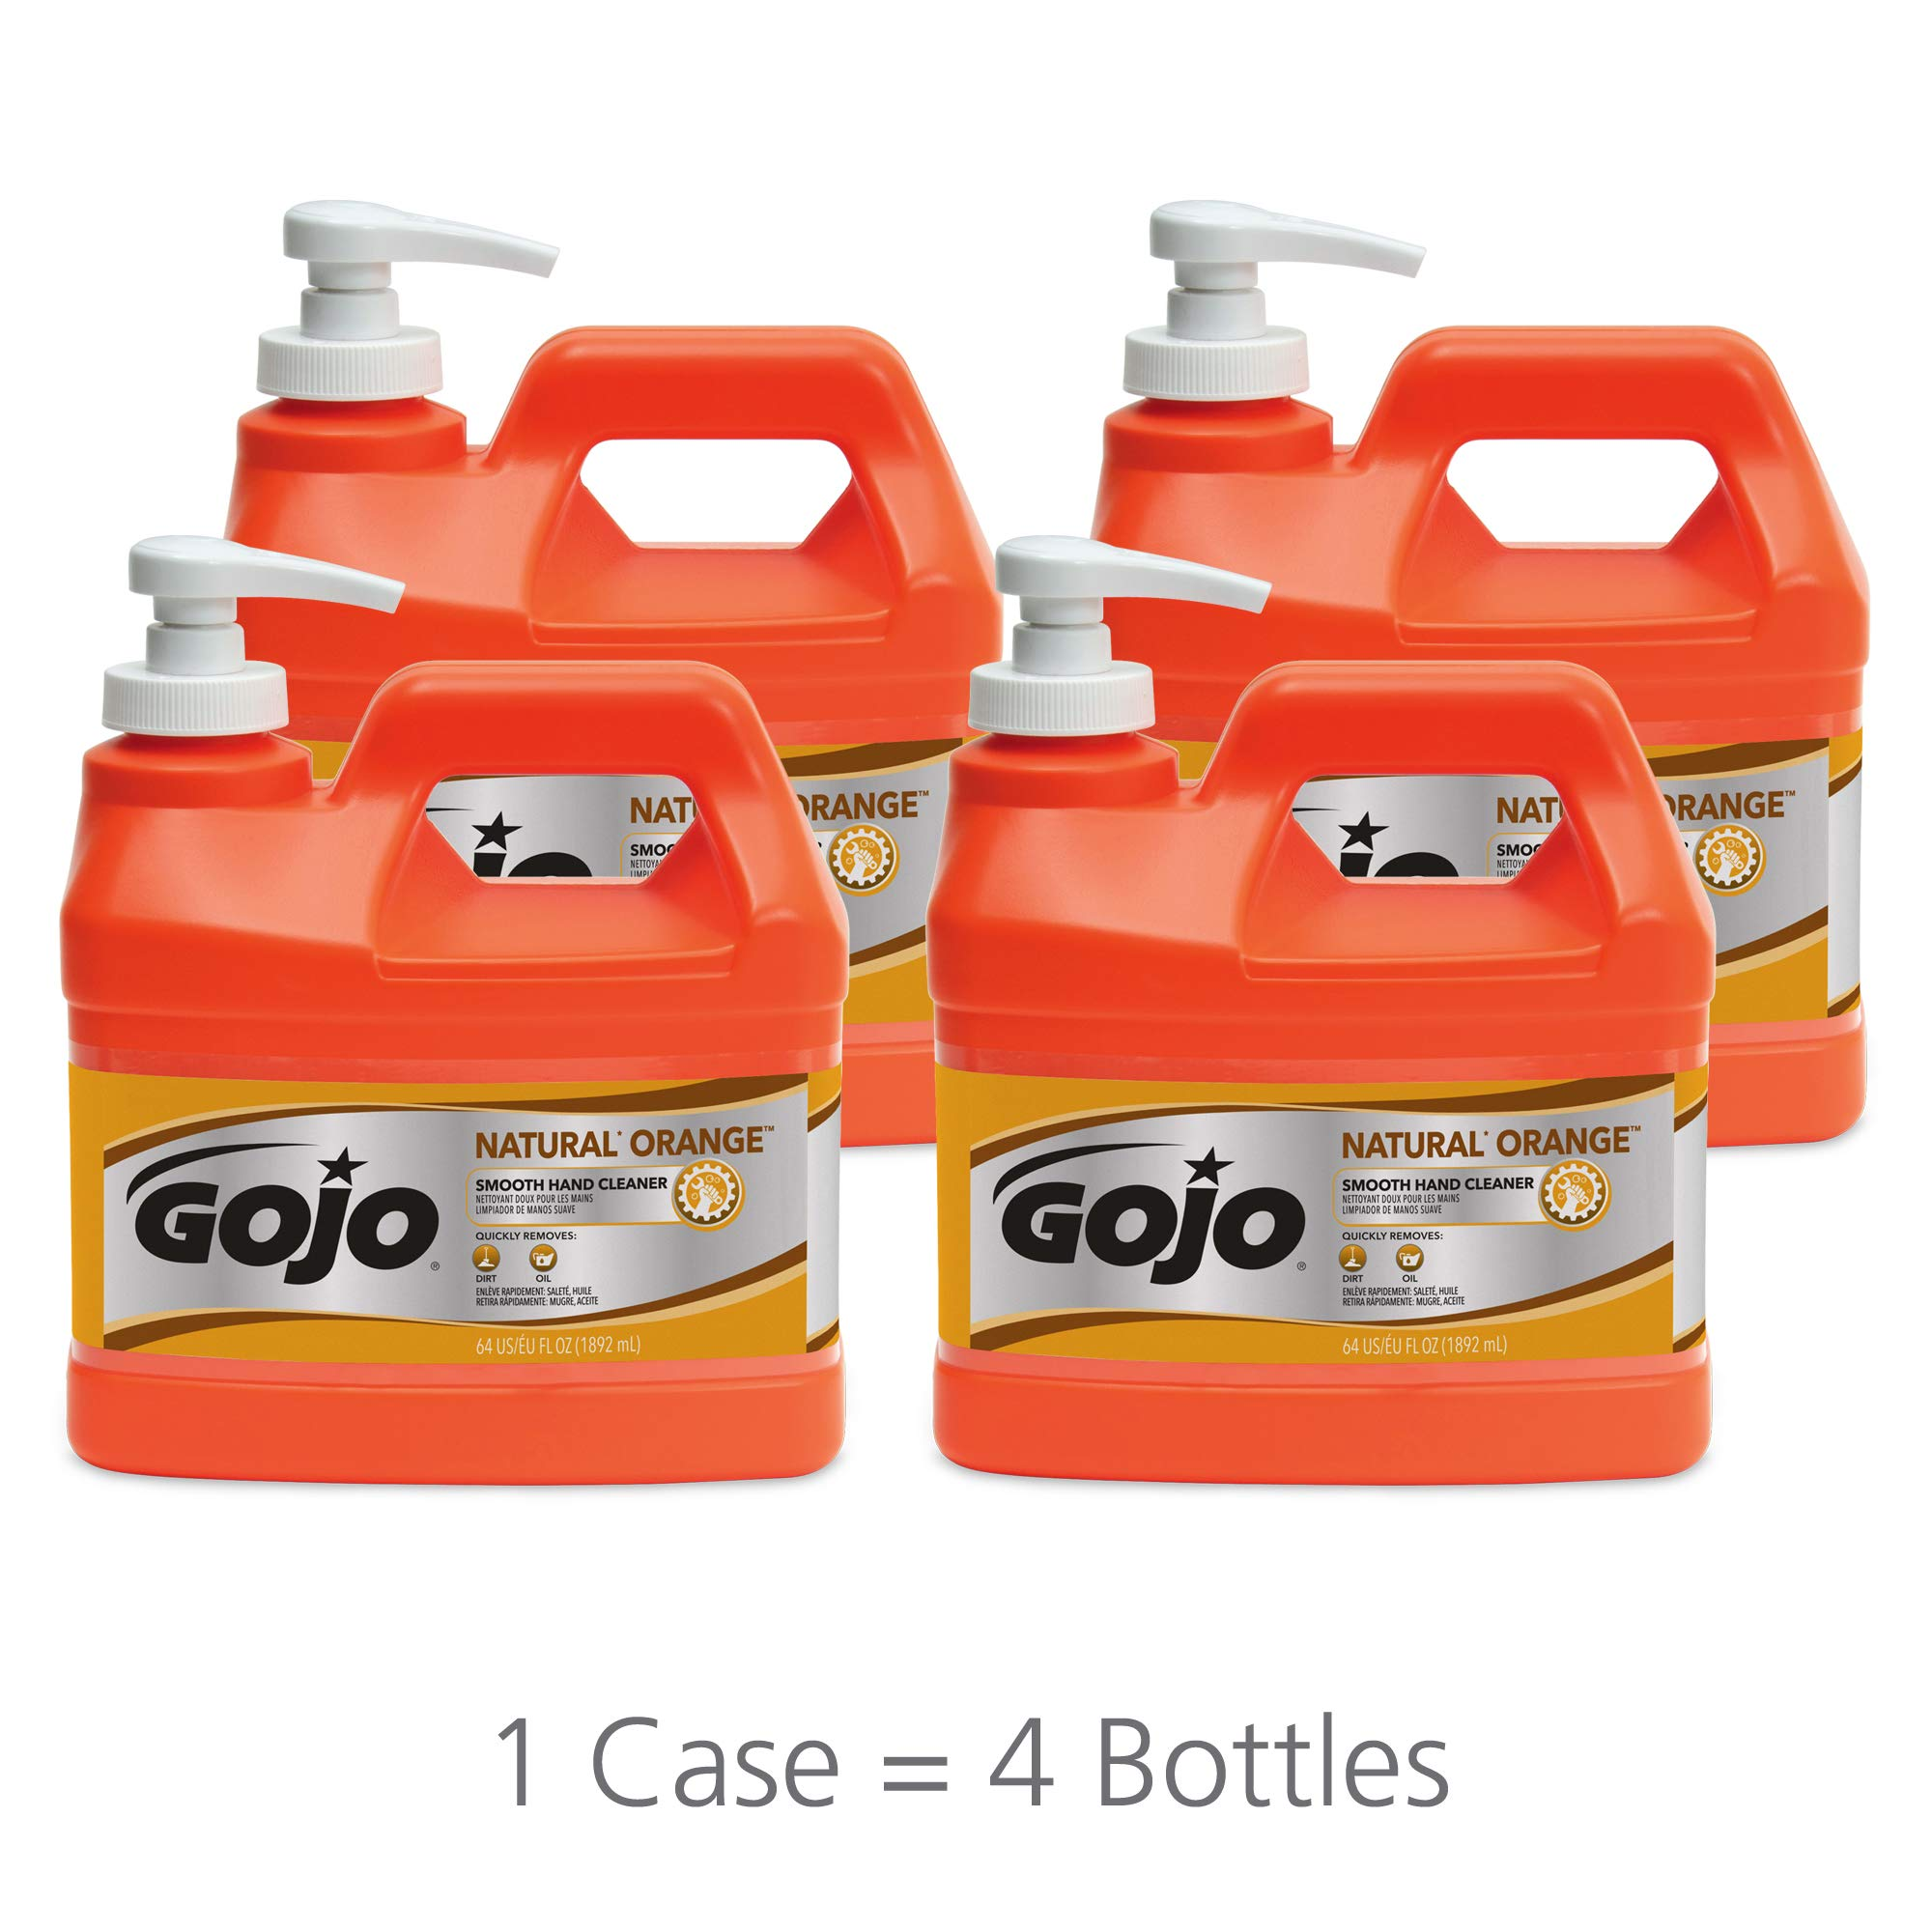 GOJO 0948-04 Natural Orange Smooth Hand Cleaner, 1/2 Gallon Pump Bottle (Pack of 4)